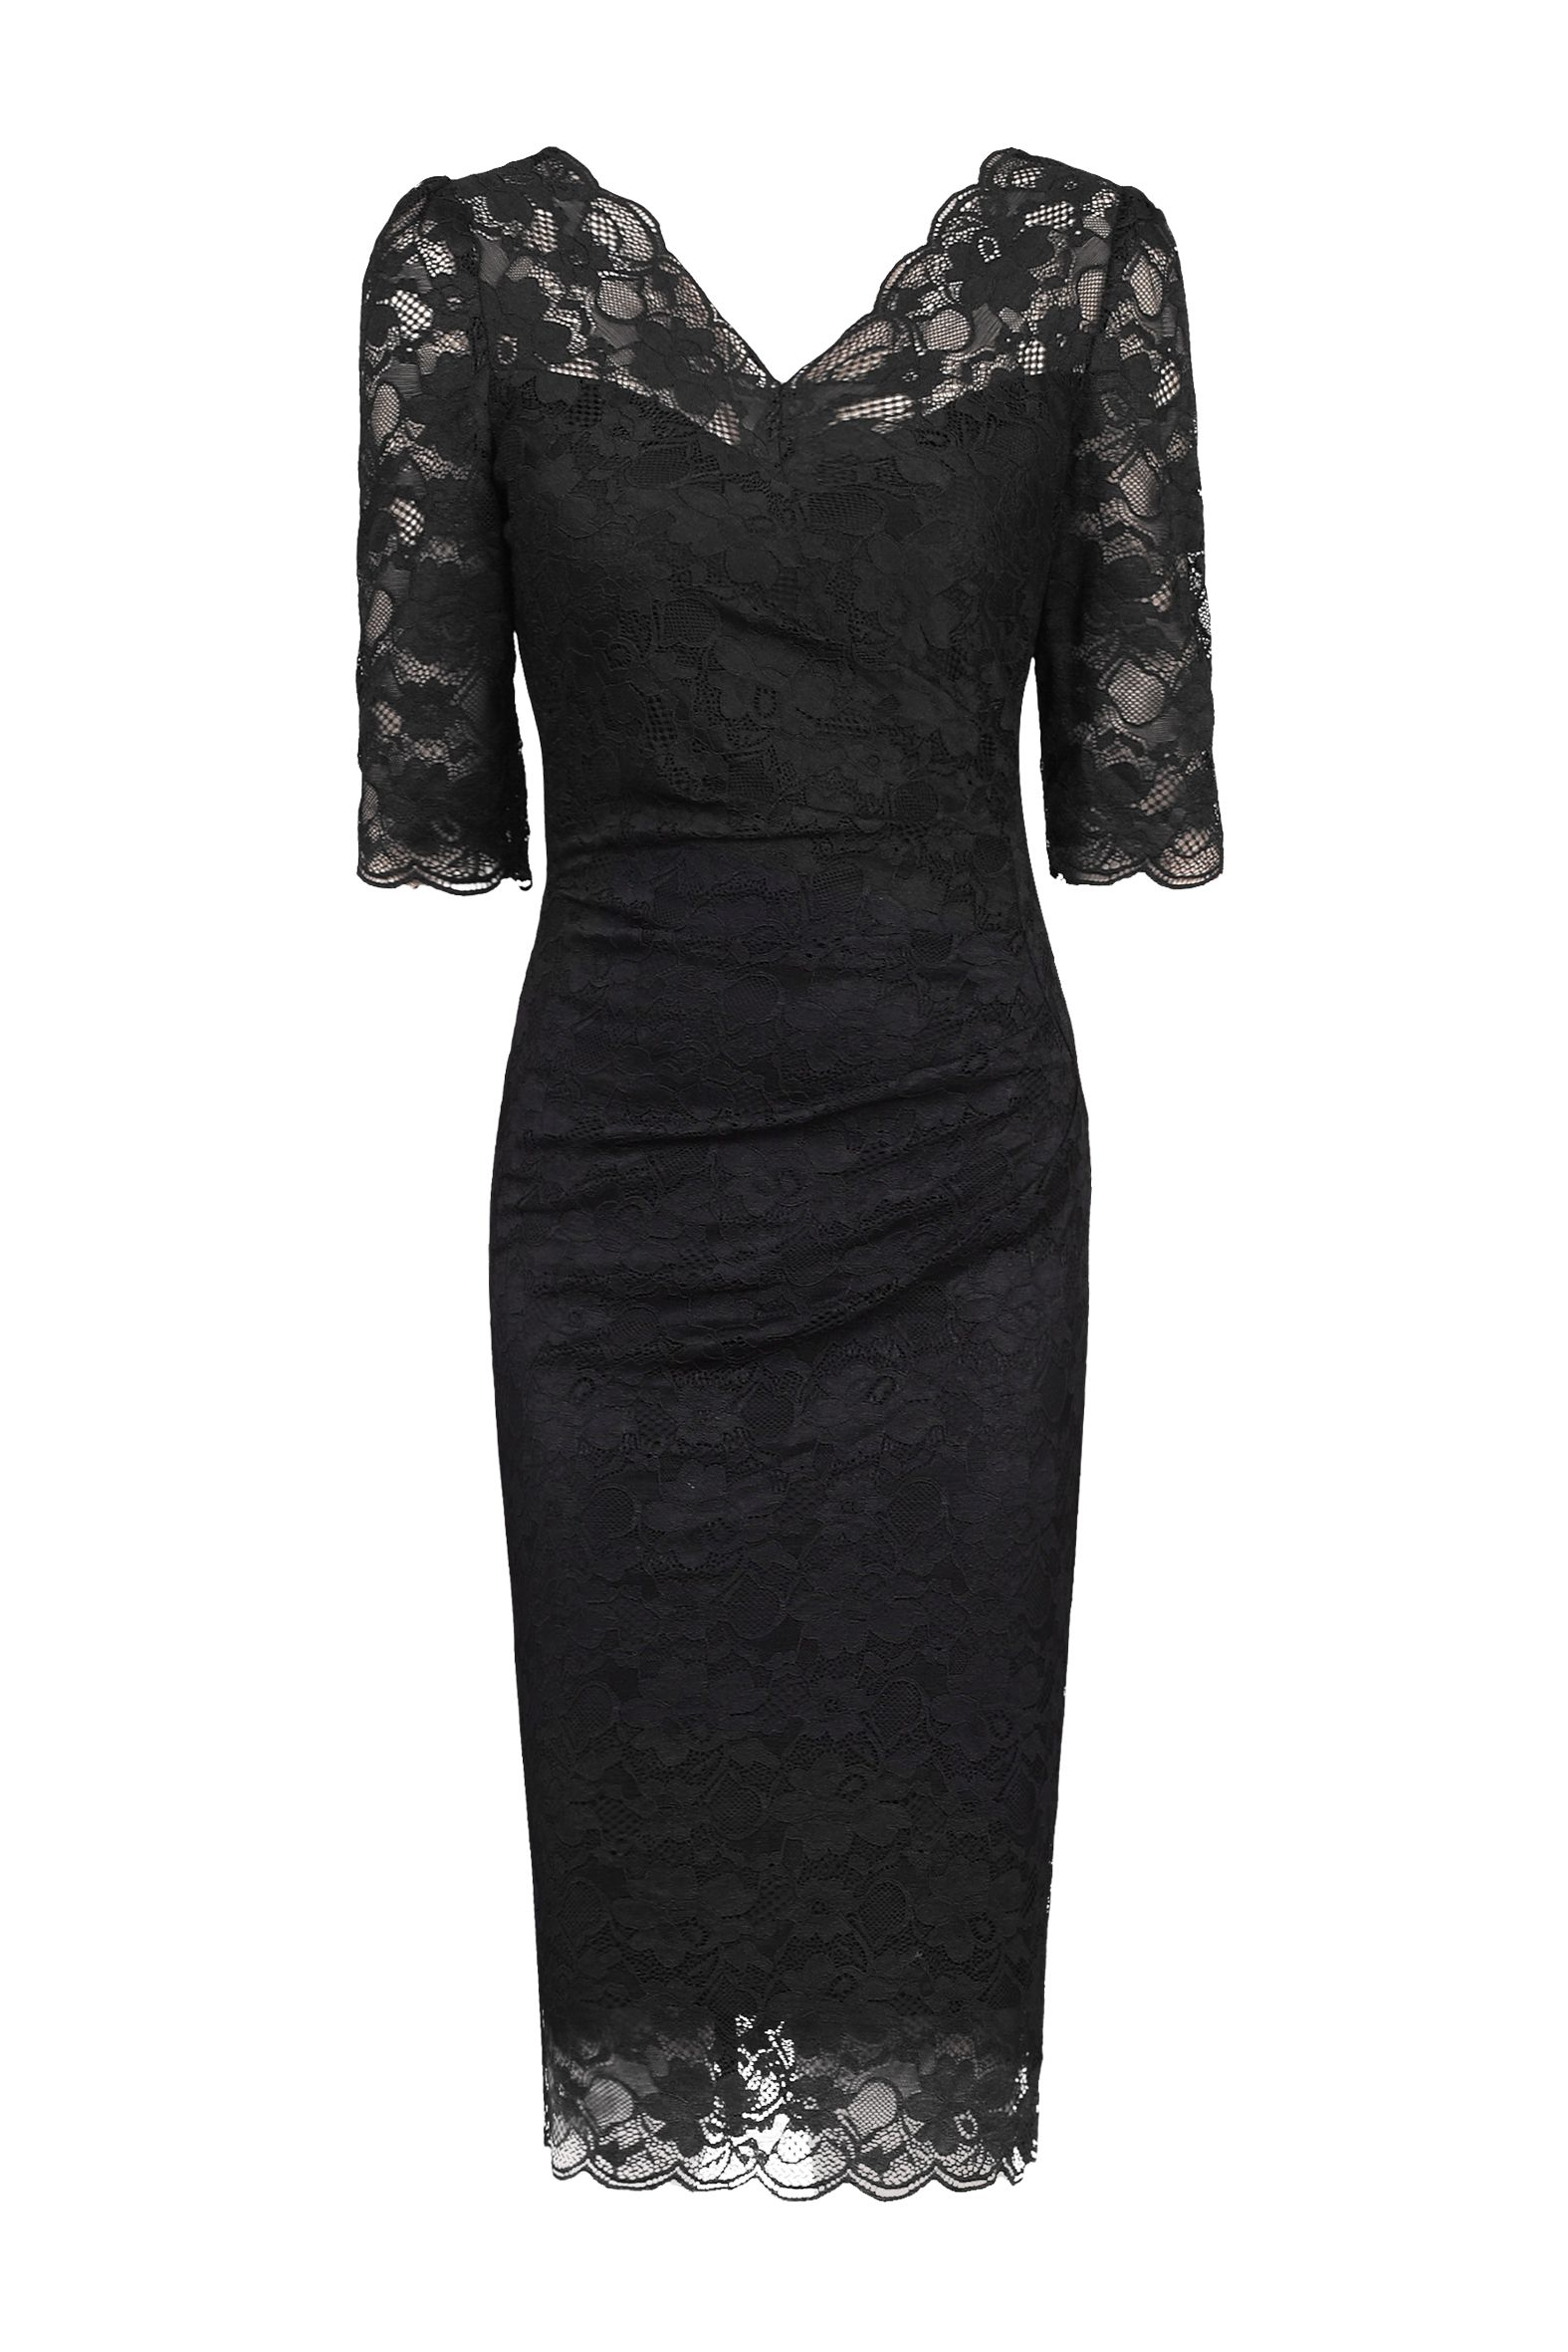 Jolie Moi 3/4 Sleeve Scalloped Lace Dress, Black